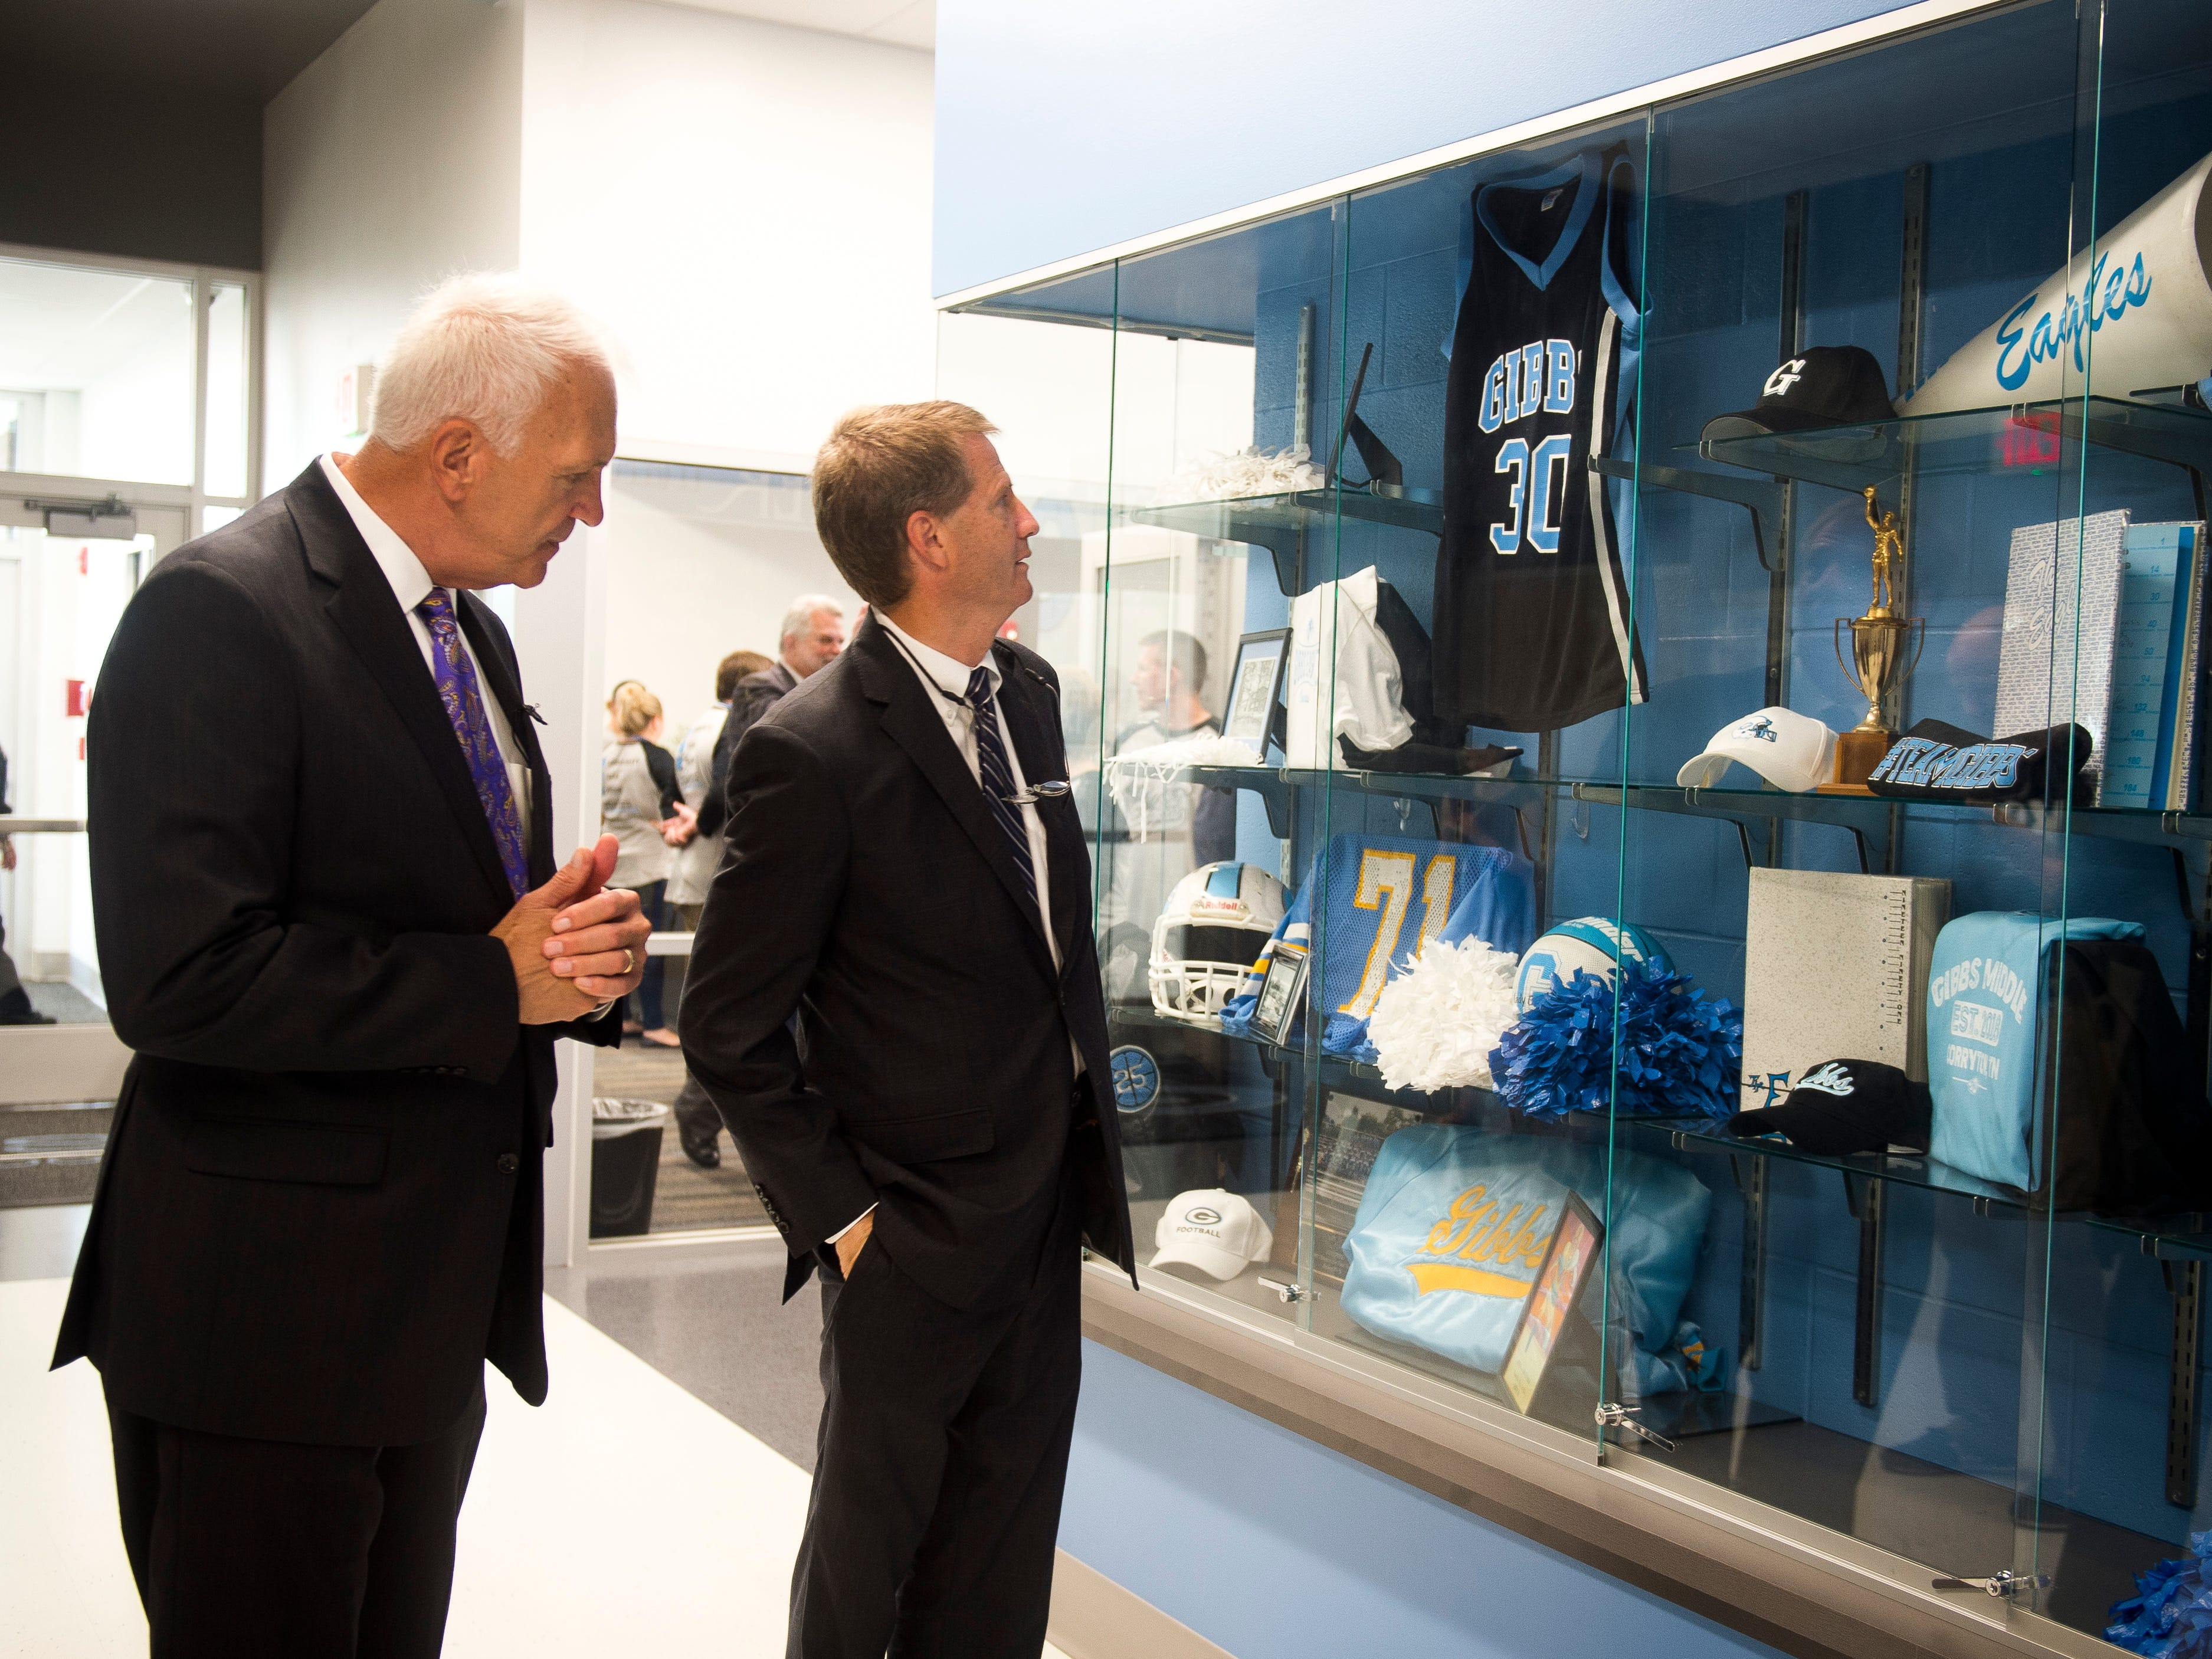 Knox County Schools superintendent Bob Thomas, left, and Knox County Mayor Tim Burchett, right, check out memorabilia displayed inside the new Gibbs Middle School on the first day of school on Wednesday, August 8, 2018.